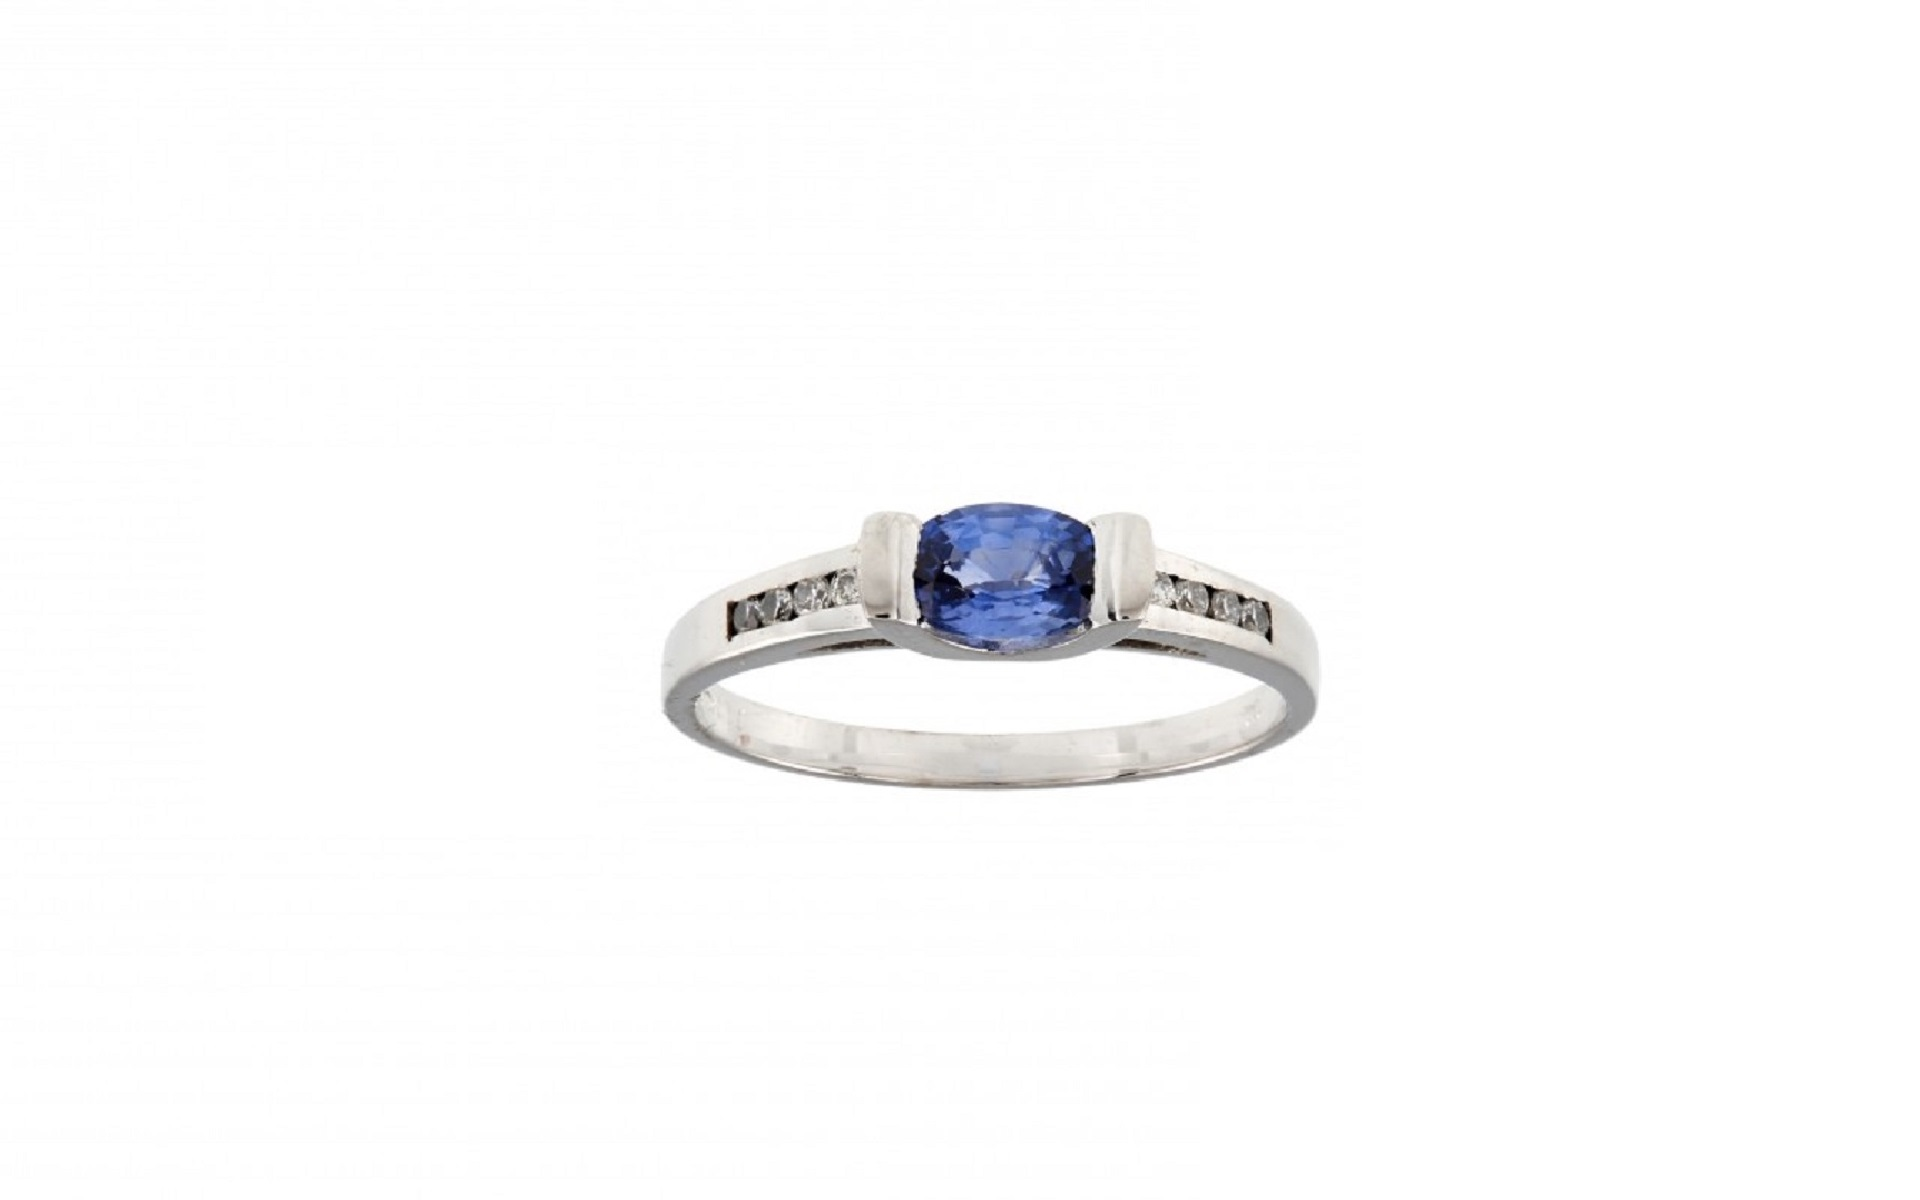 Top 48410362 Bague saphir ovale 0.6CT Or blanc 750/1000 – Malique  DV04